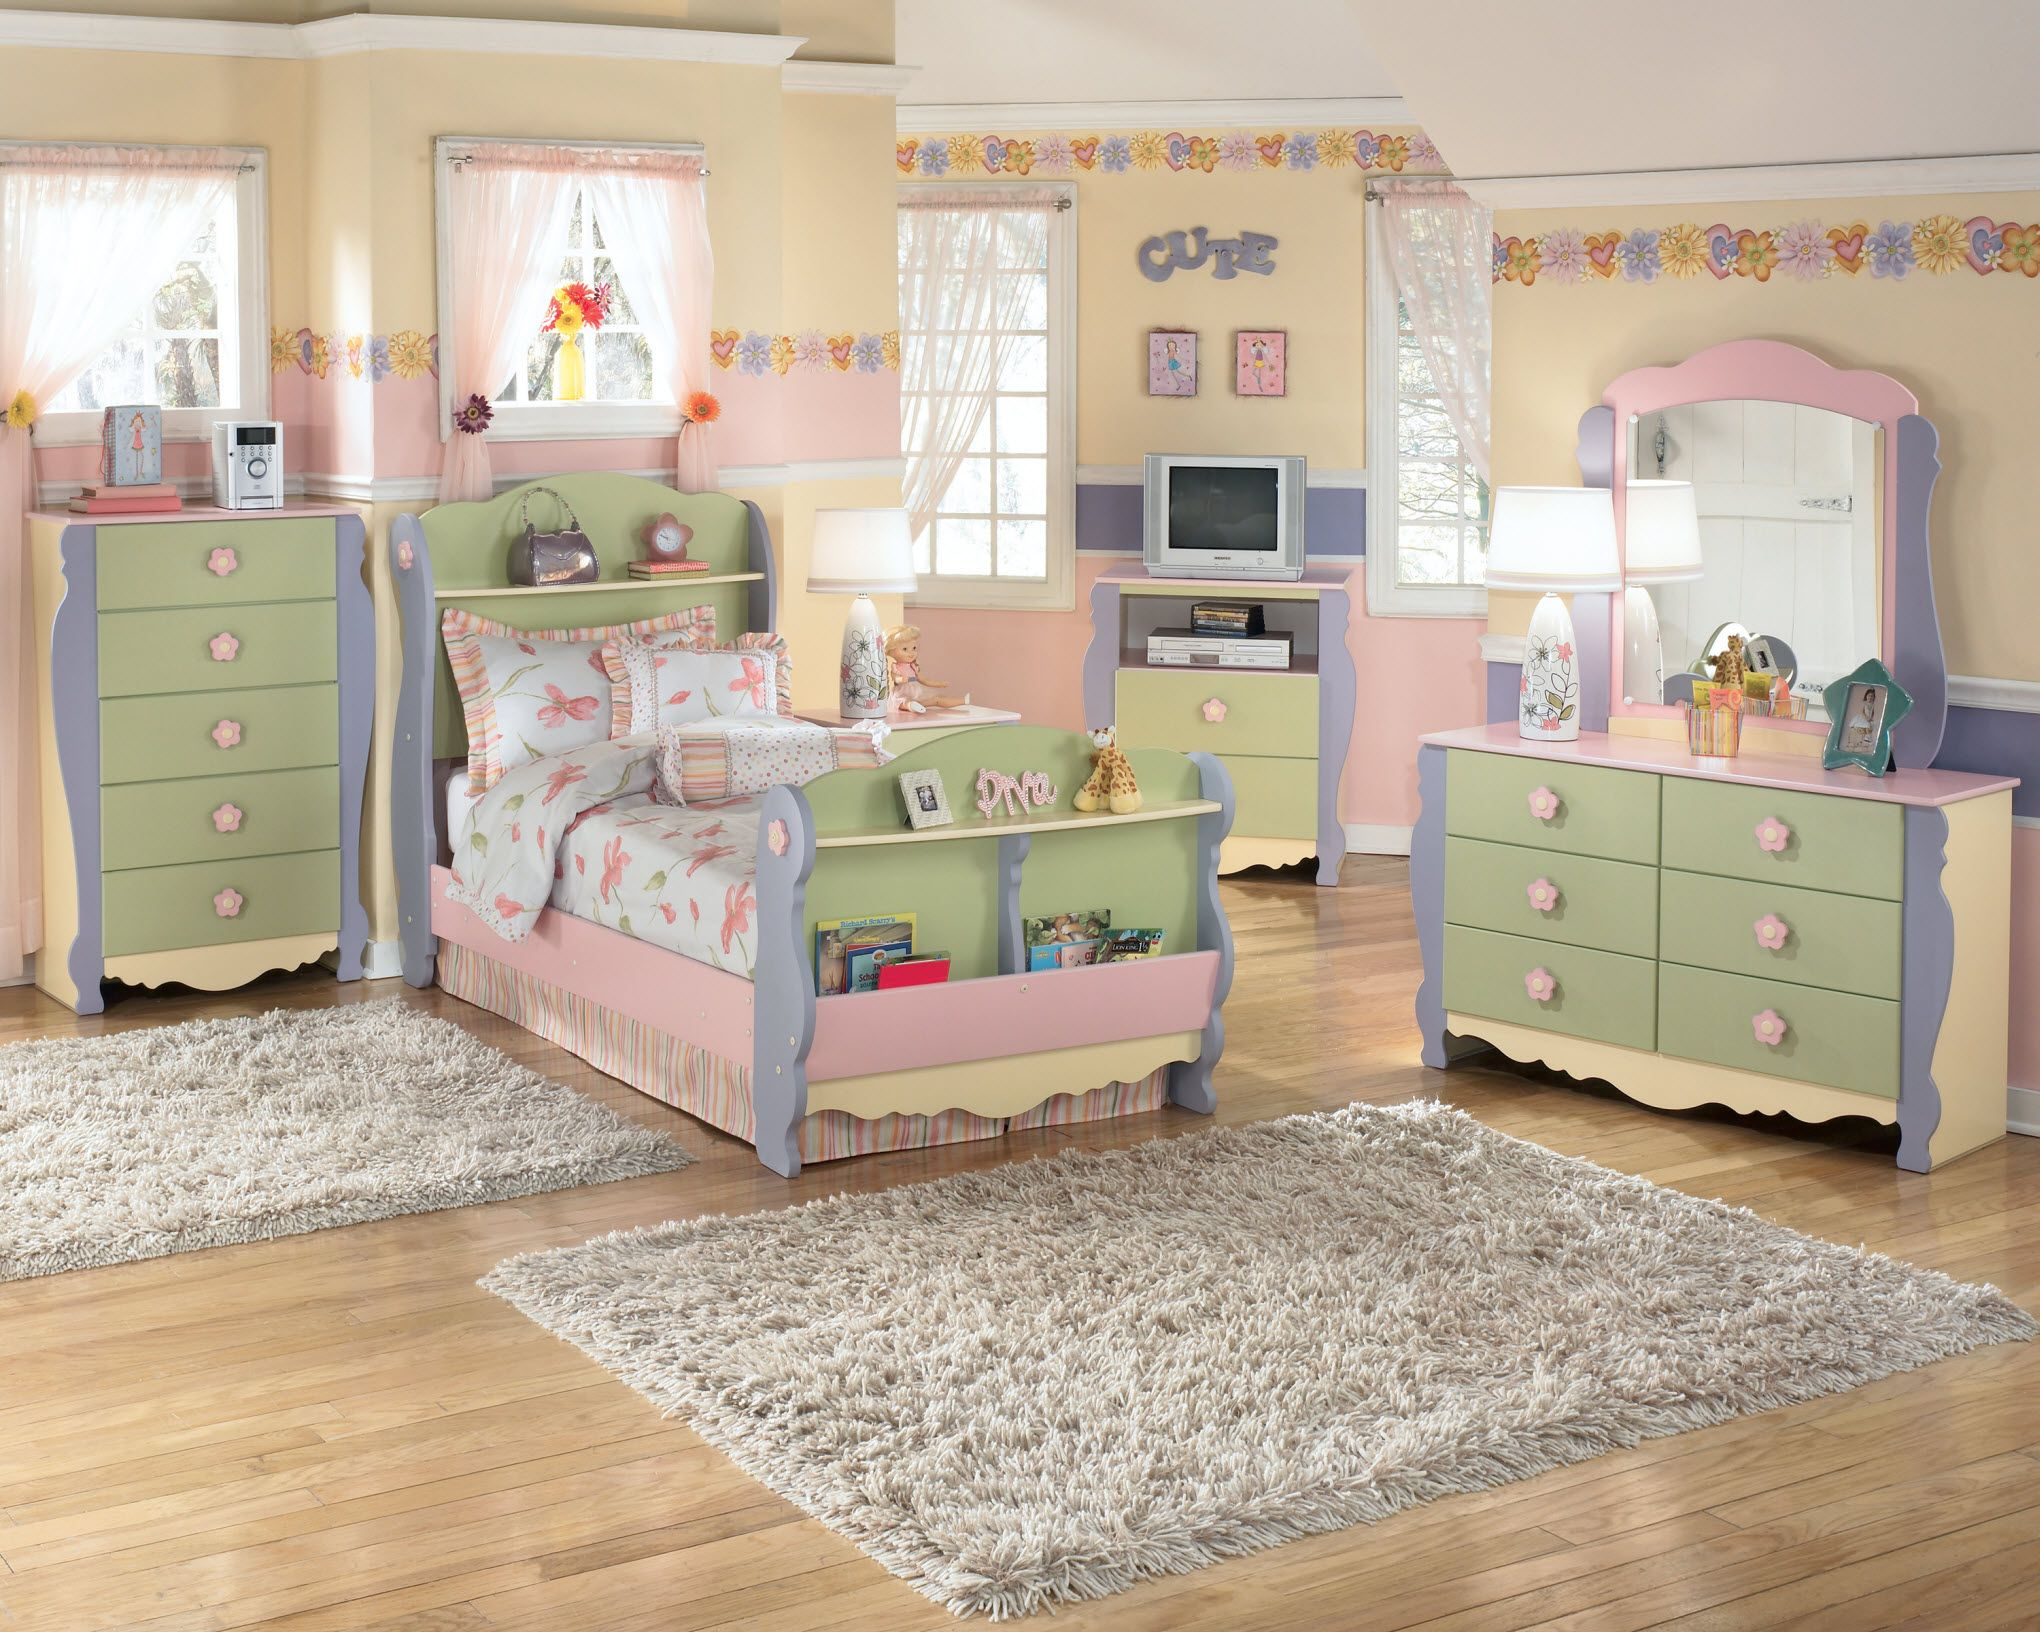 Ashley kids bedroom furniture - 17 Best Images About Twyla Room On Pinterest Furniture Cute Curtains And Hello Kitty Toys